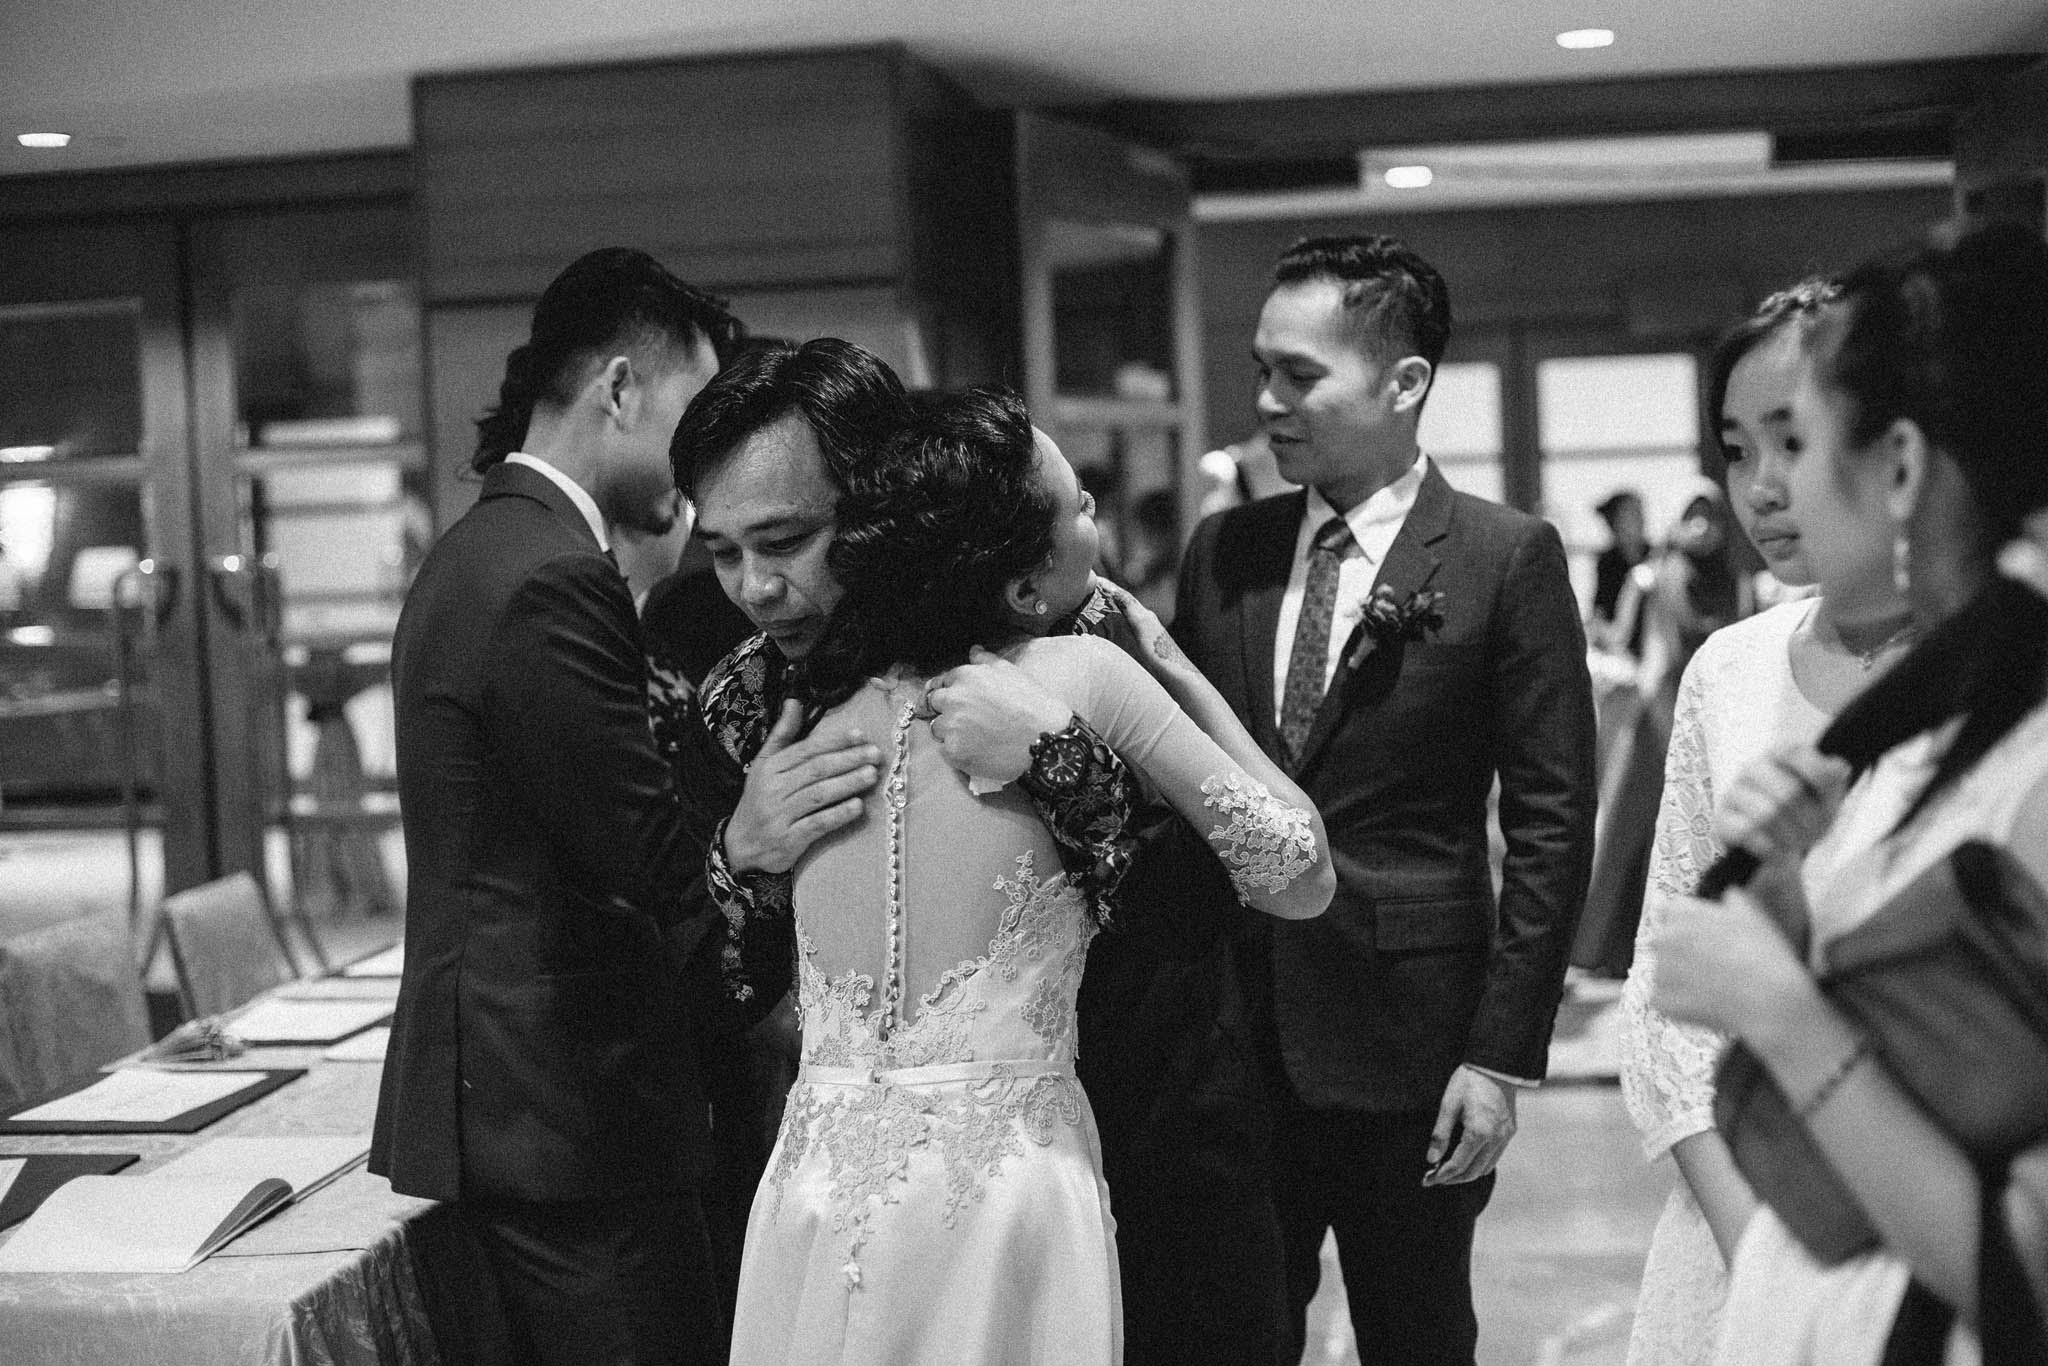 singapore-wedding-photographer-wedding-hafiana-teck-kuan-073.jpg